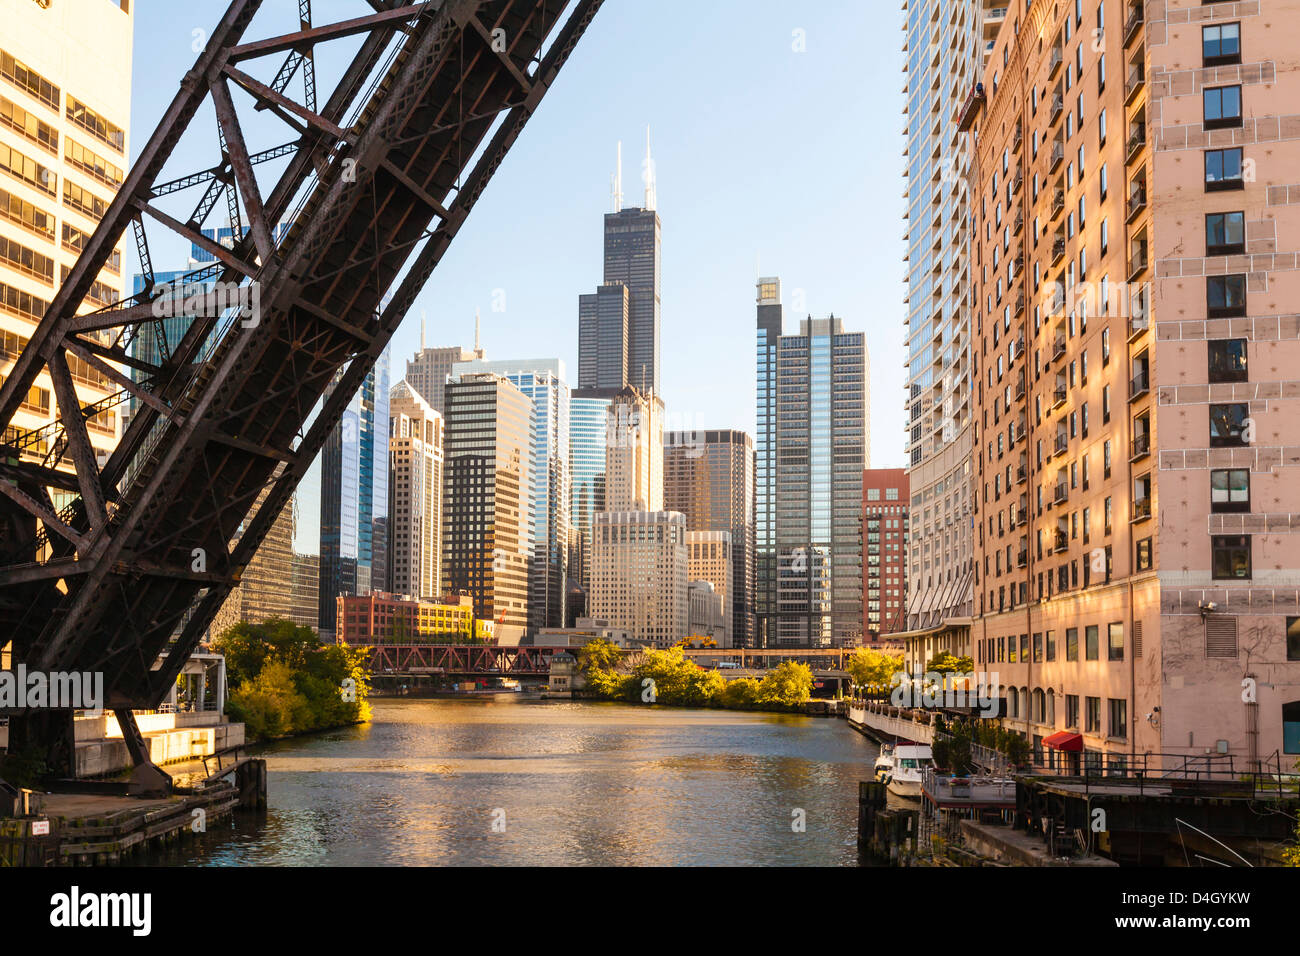 Chicago River and the West Loop area, Willis Tower, Chicago, Illinois, USA Stock Photo